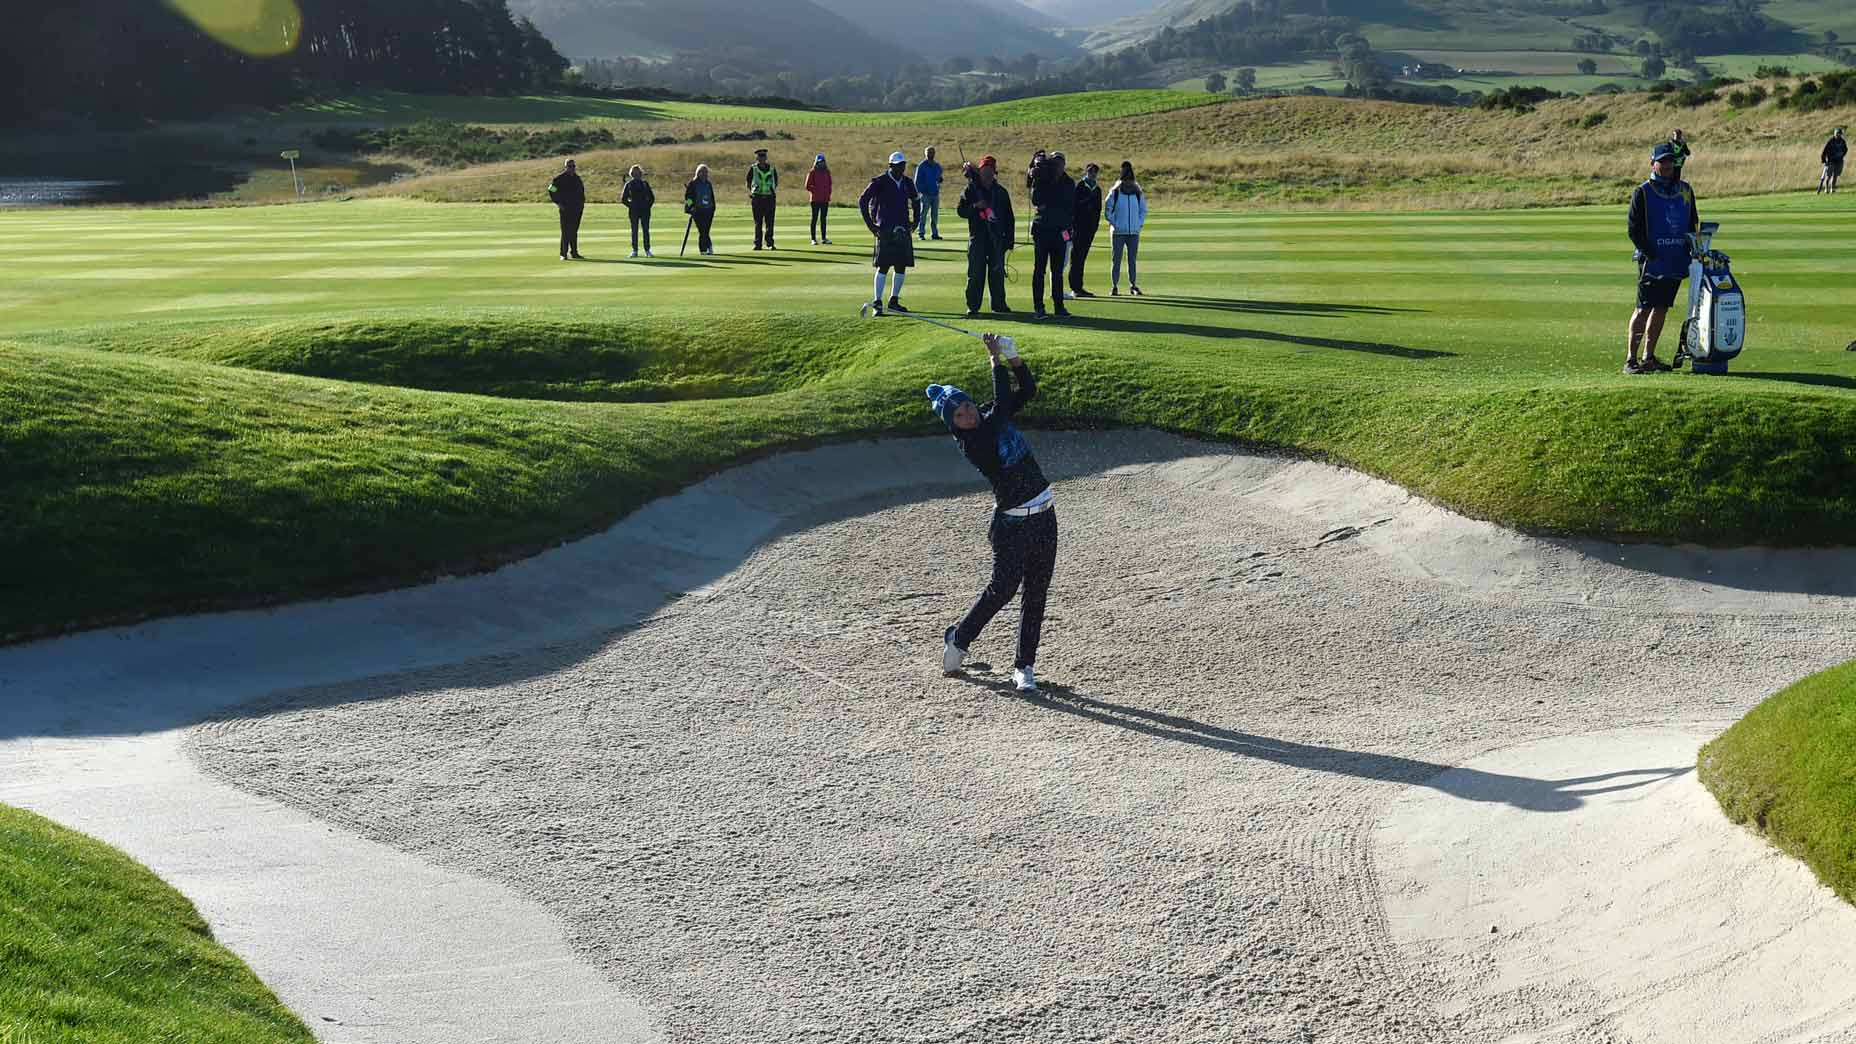 Carlota Ciganda hits from a fairway bunker during the Solheim Cup